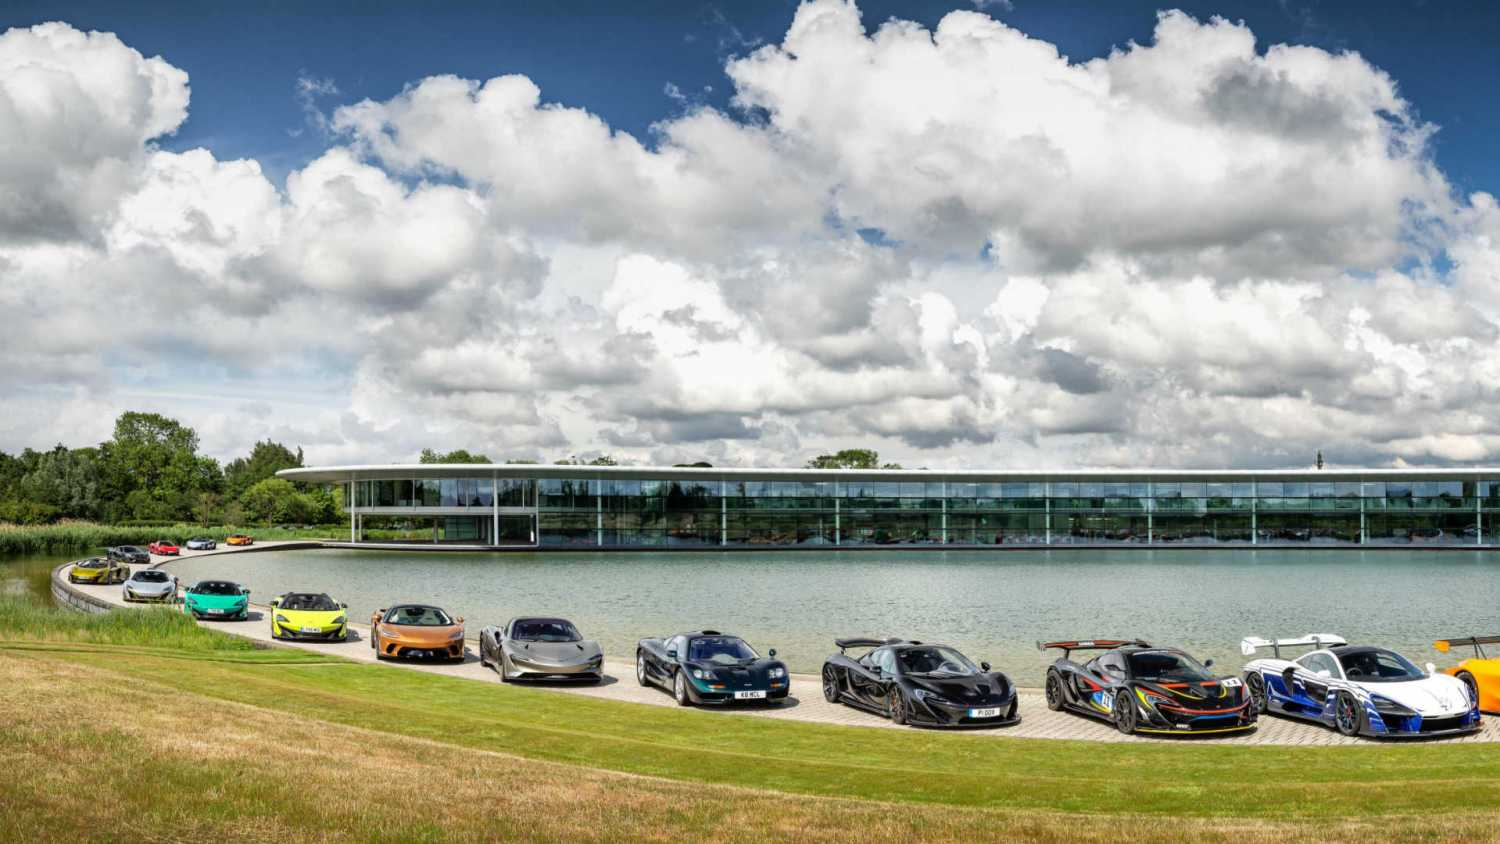 McLaren £50m display in Woking